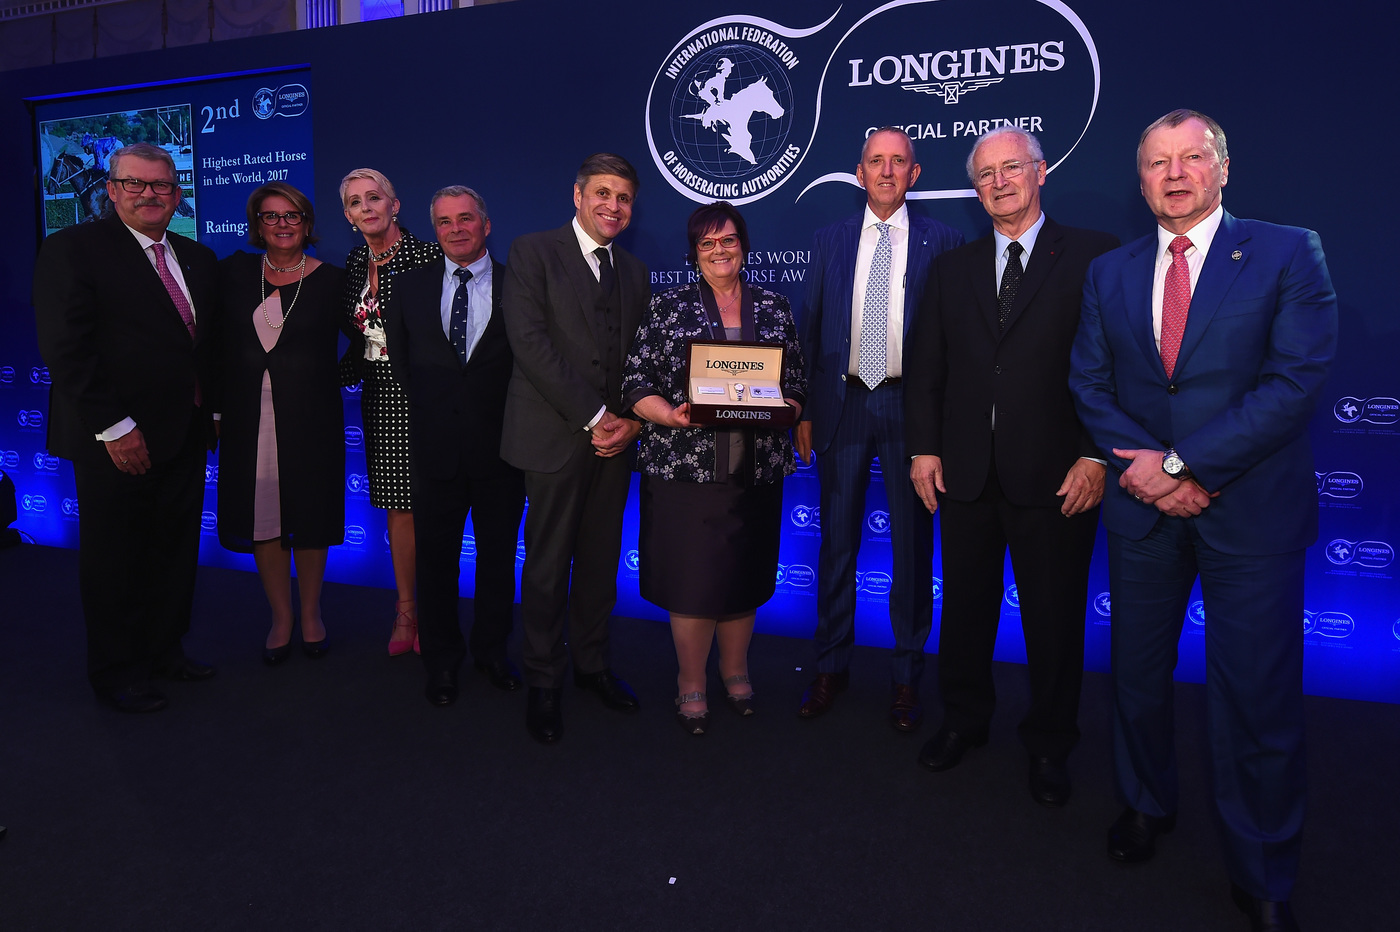 Longines Flat Racing Event: Arrogate crowned the Longines World's Best Racehorse for the second year in a row, Qatar Prix de l'Arc de Triomphe named Longines World's Best Horse Race for the second time 3